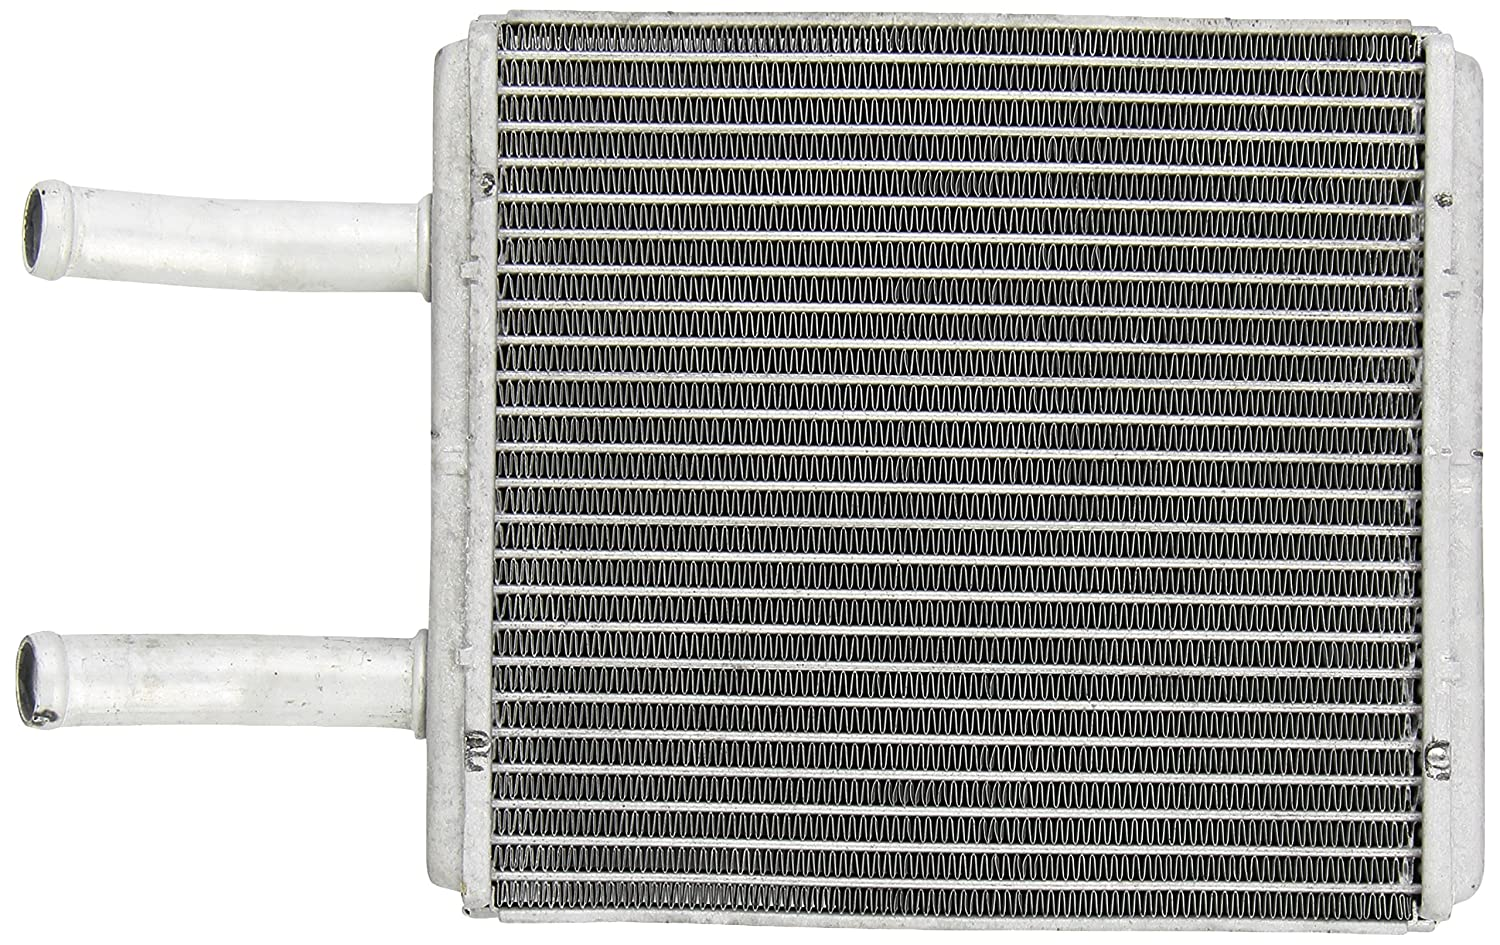 Nissens 77604 Heat Exchanger, Interior Heating